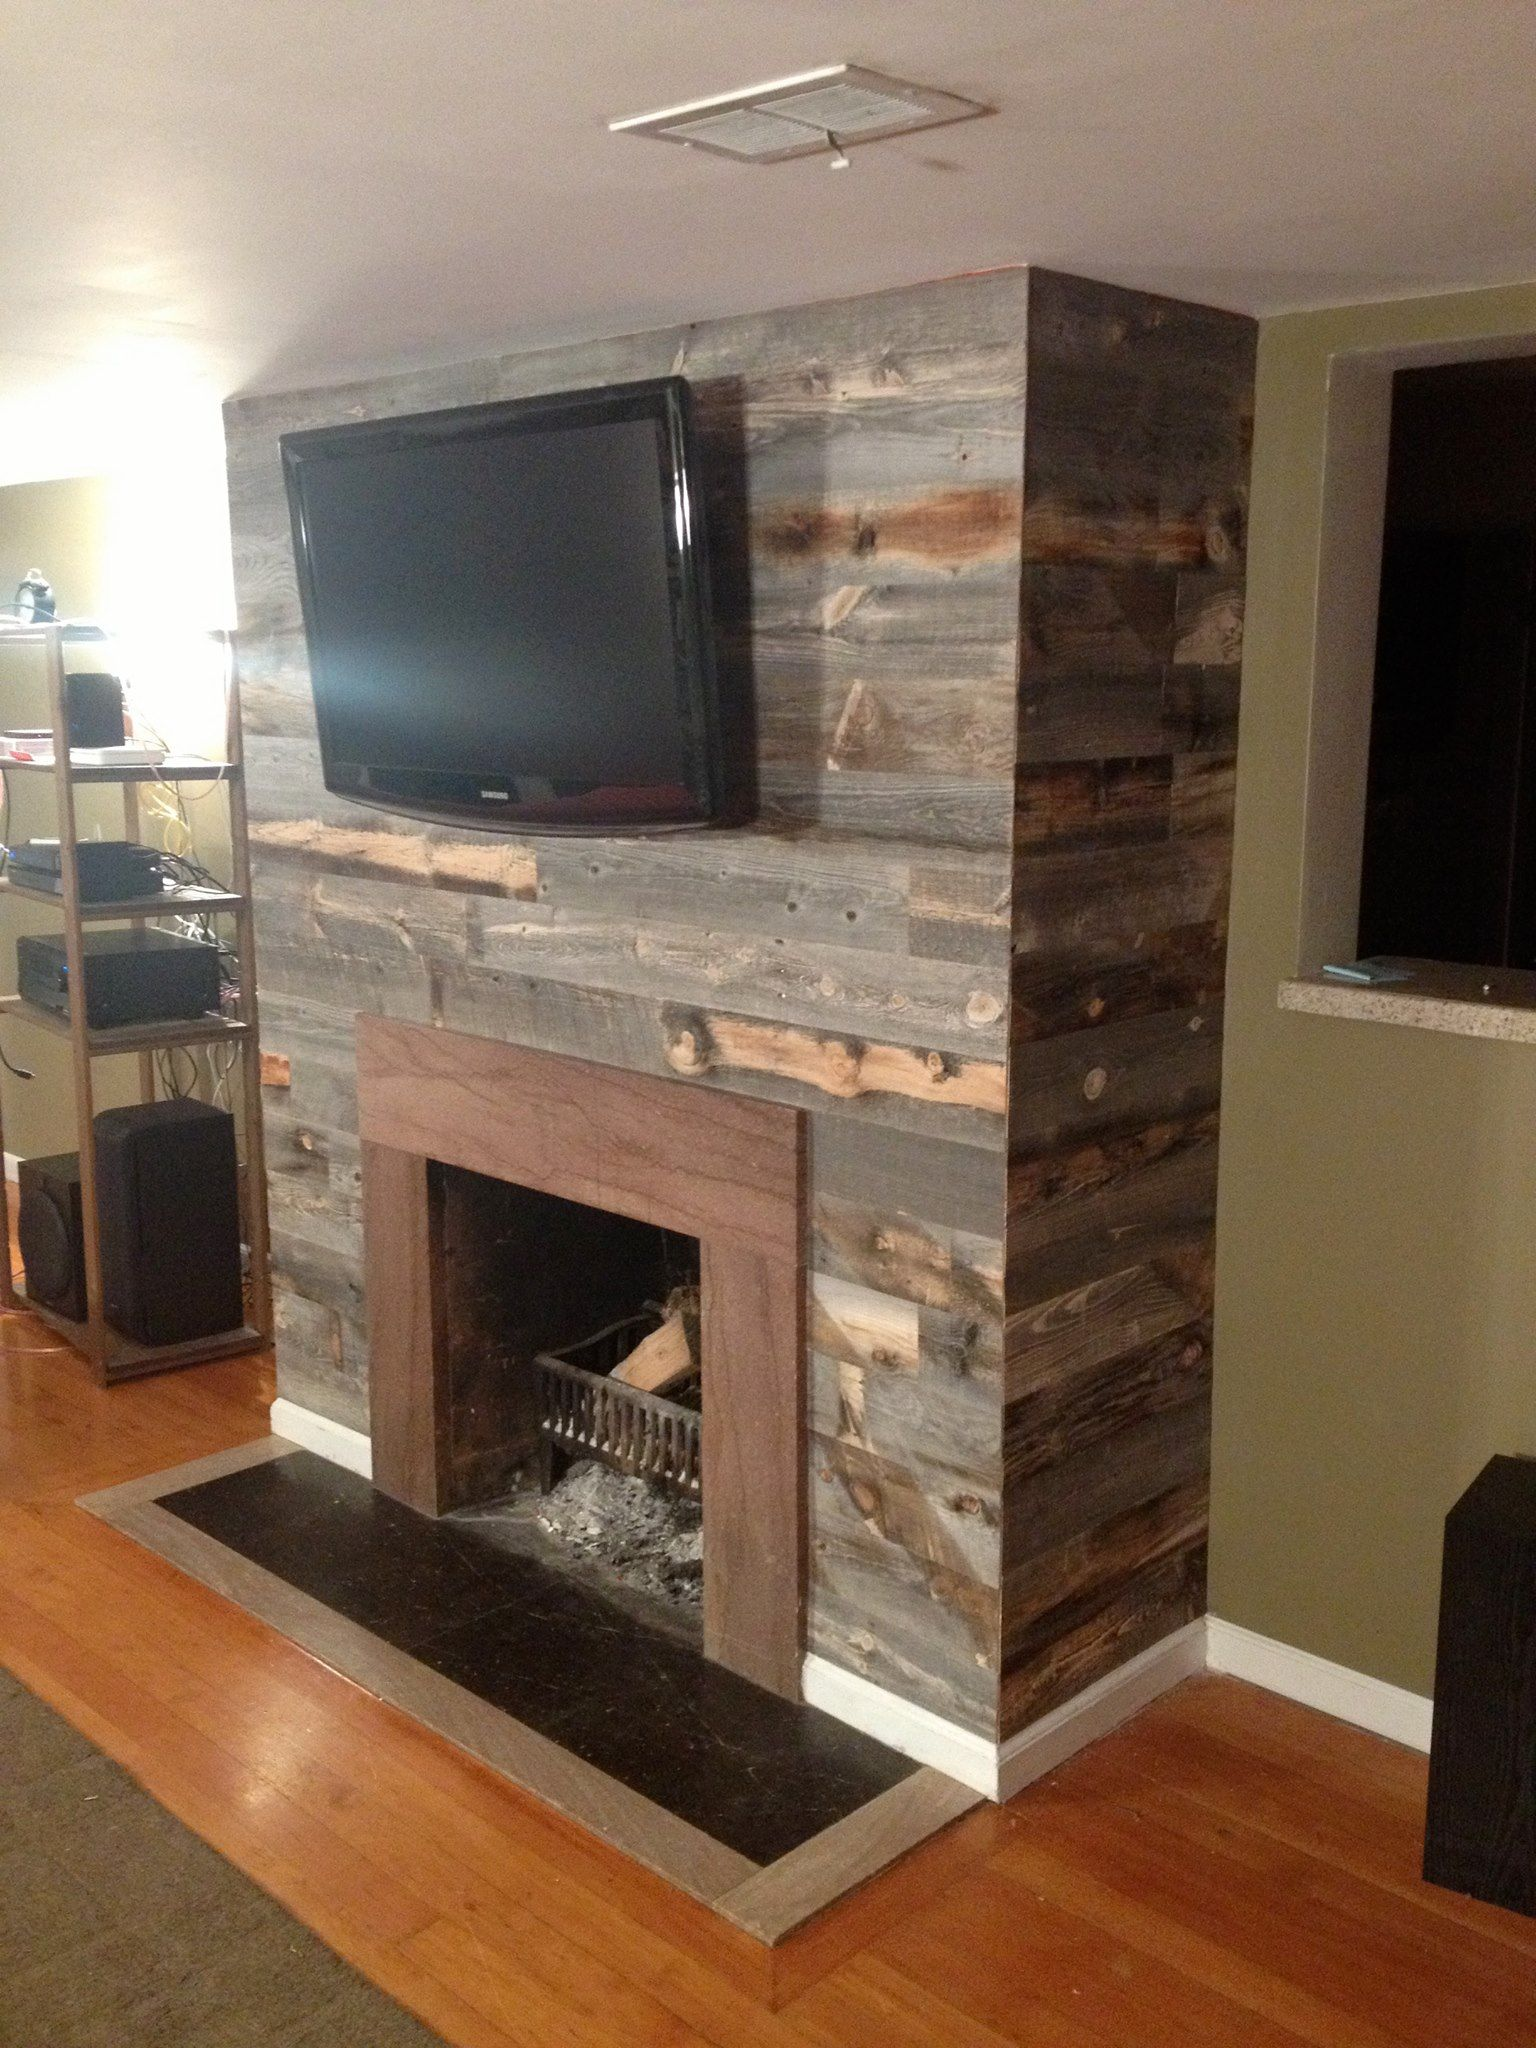 Reclaimed Weathered Wood - Reclaimed Weathered Wood Flats, Fireplaces And The Fireplace